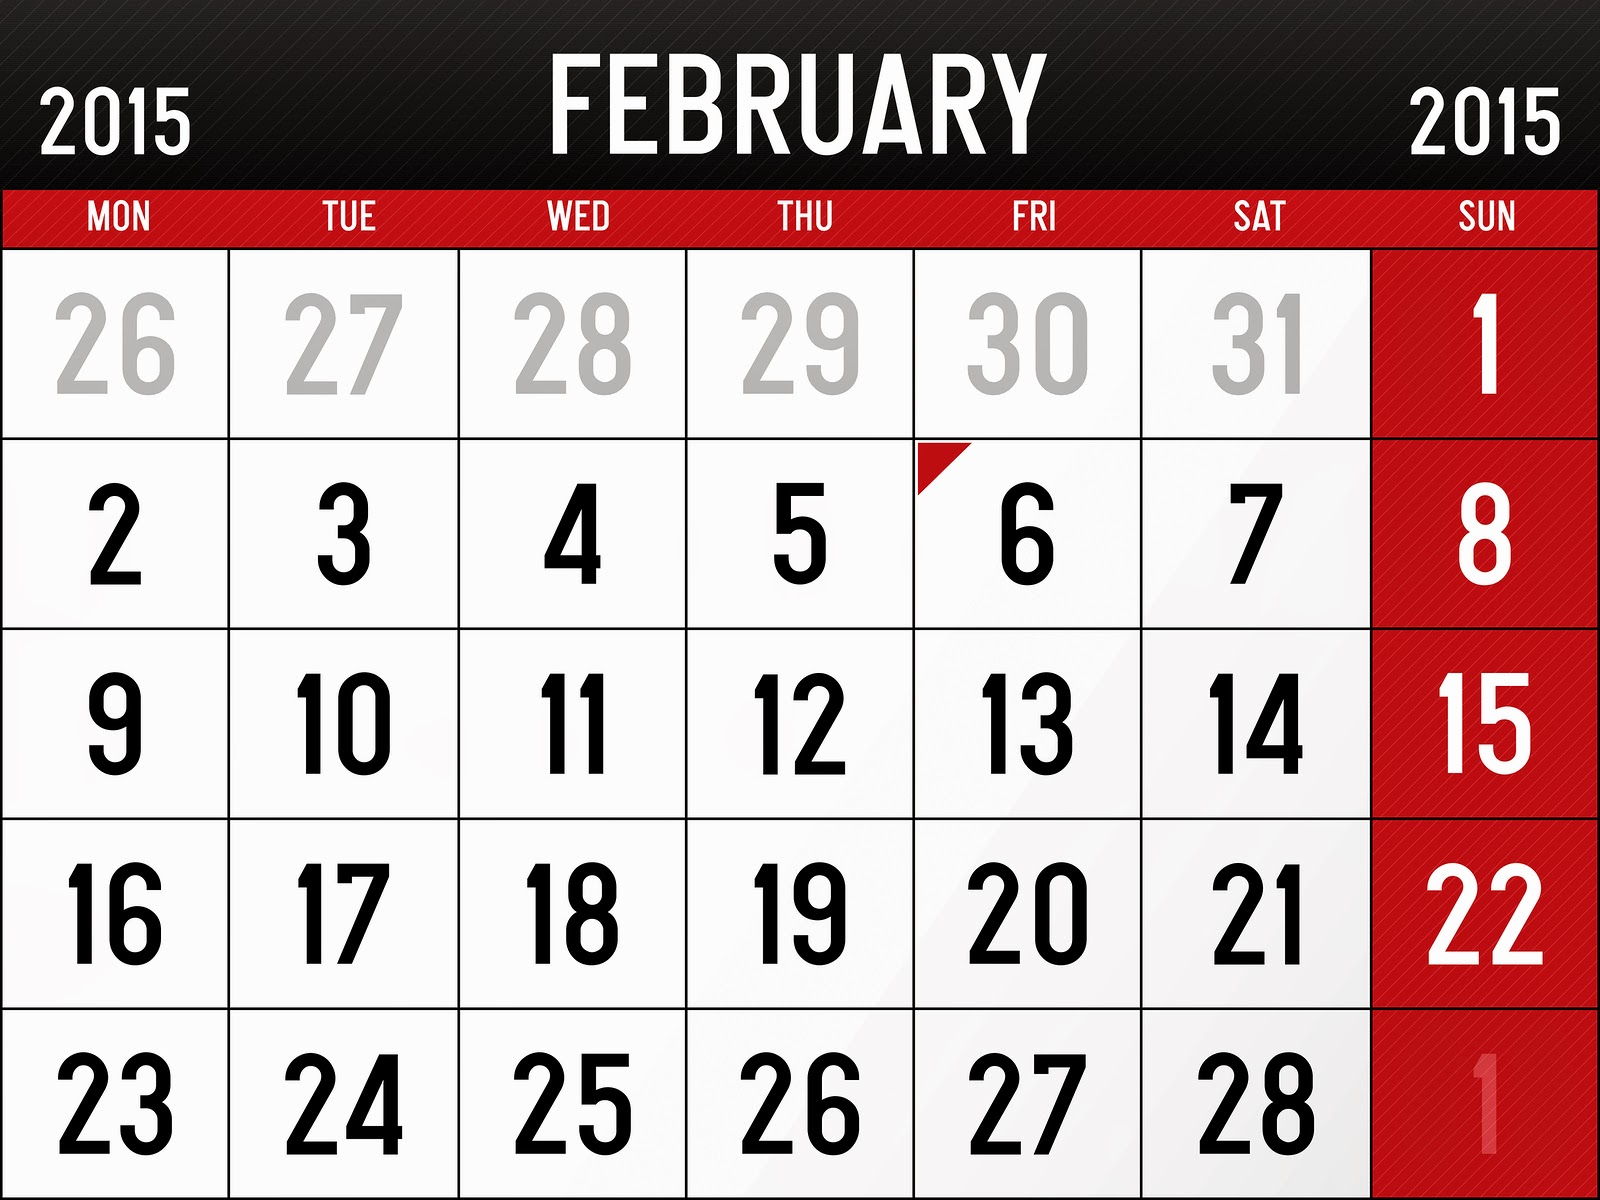 February 2015 calendar page clipart image library February 2015 clipart - ClipartFest image library